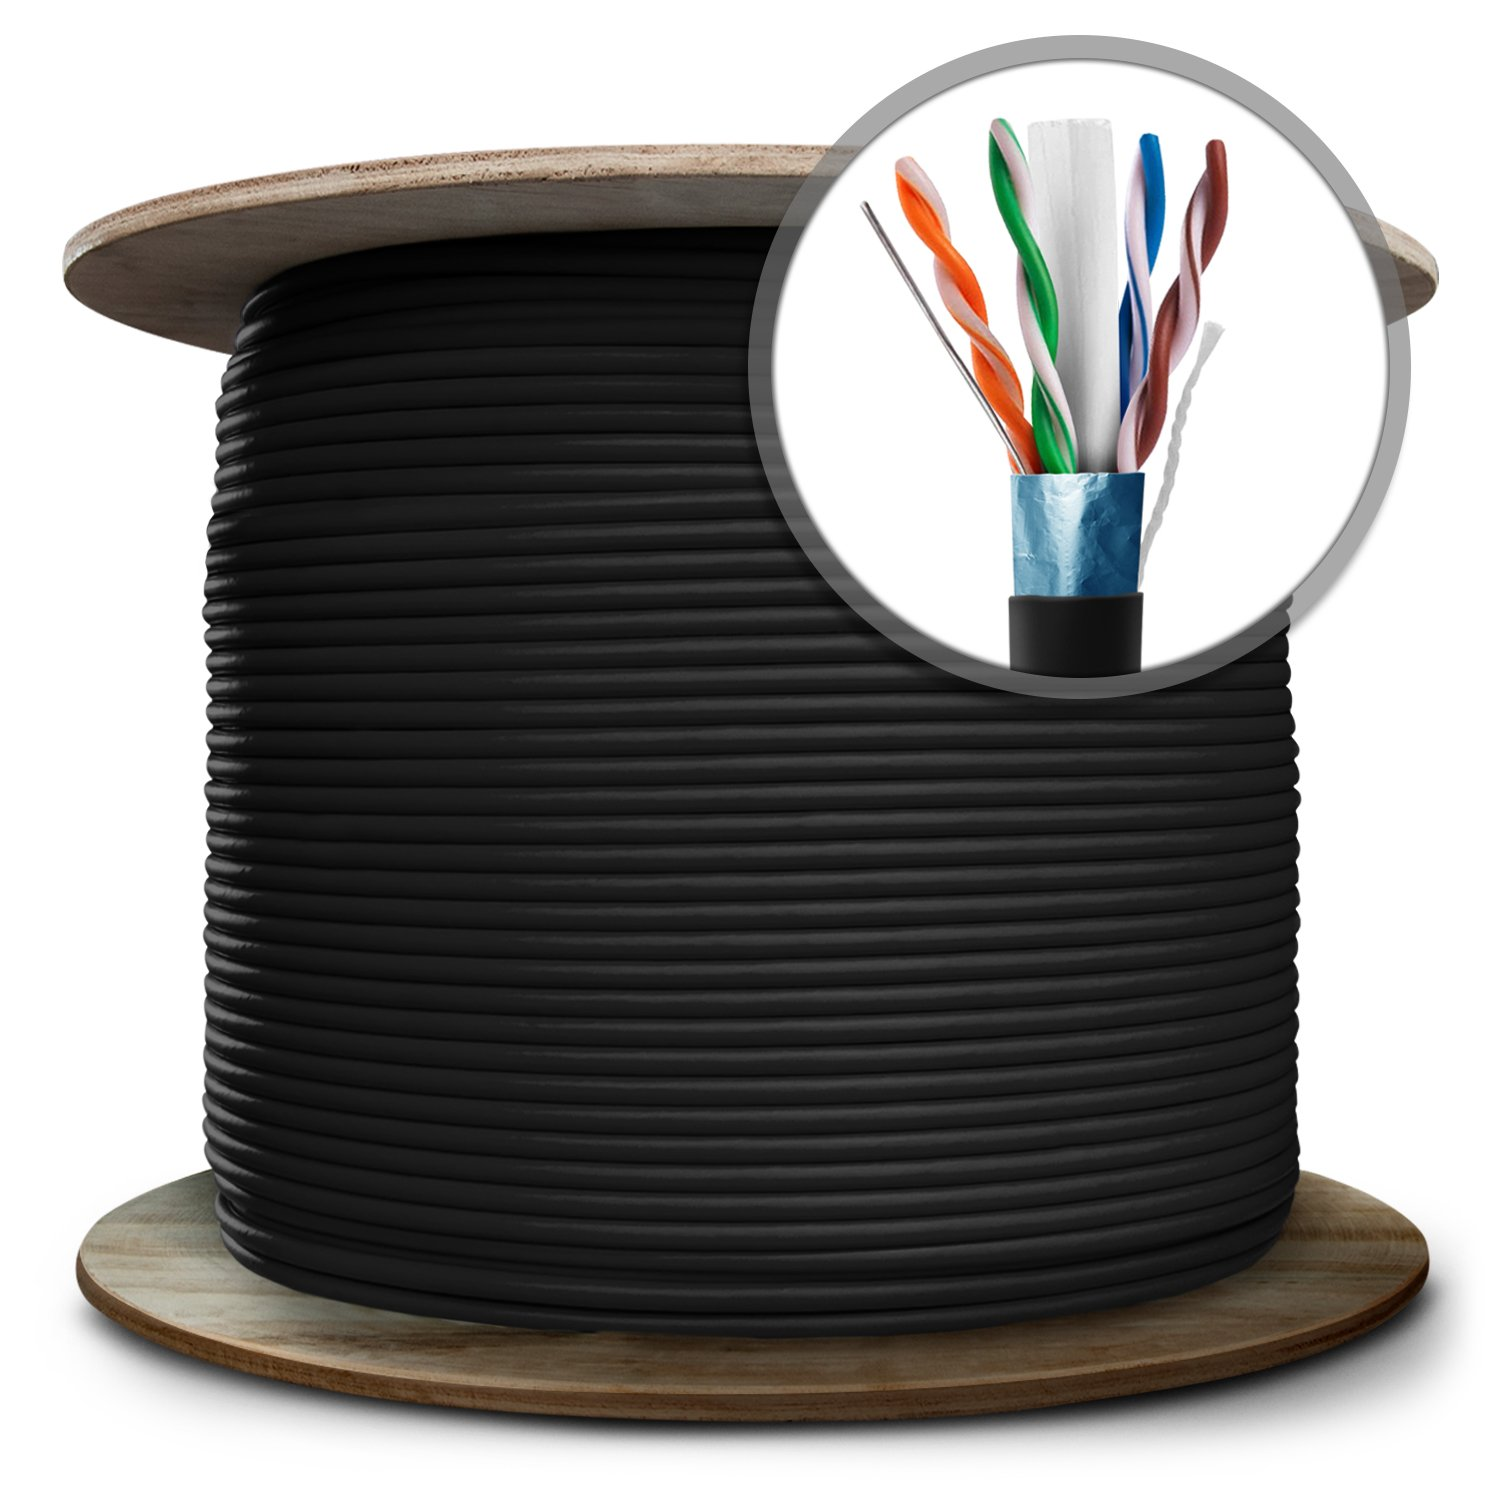 GearIT 1000 Feet Bulk Cat6 PET Film Shielded Direct Burial (CMX) Ethernet Cable for Ourdoor - Solid Twisted Pair - Cat 6 23AWG STP Full Copper Wire PVC UV, Black by GearIT